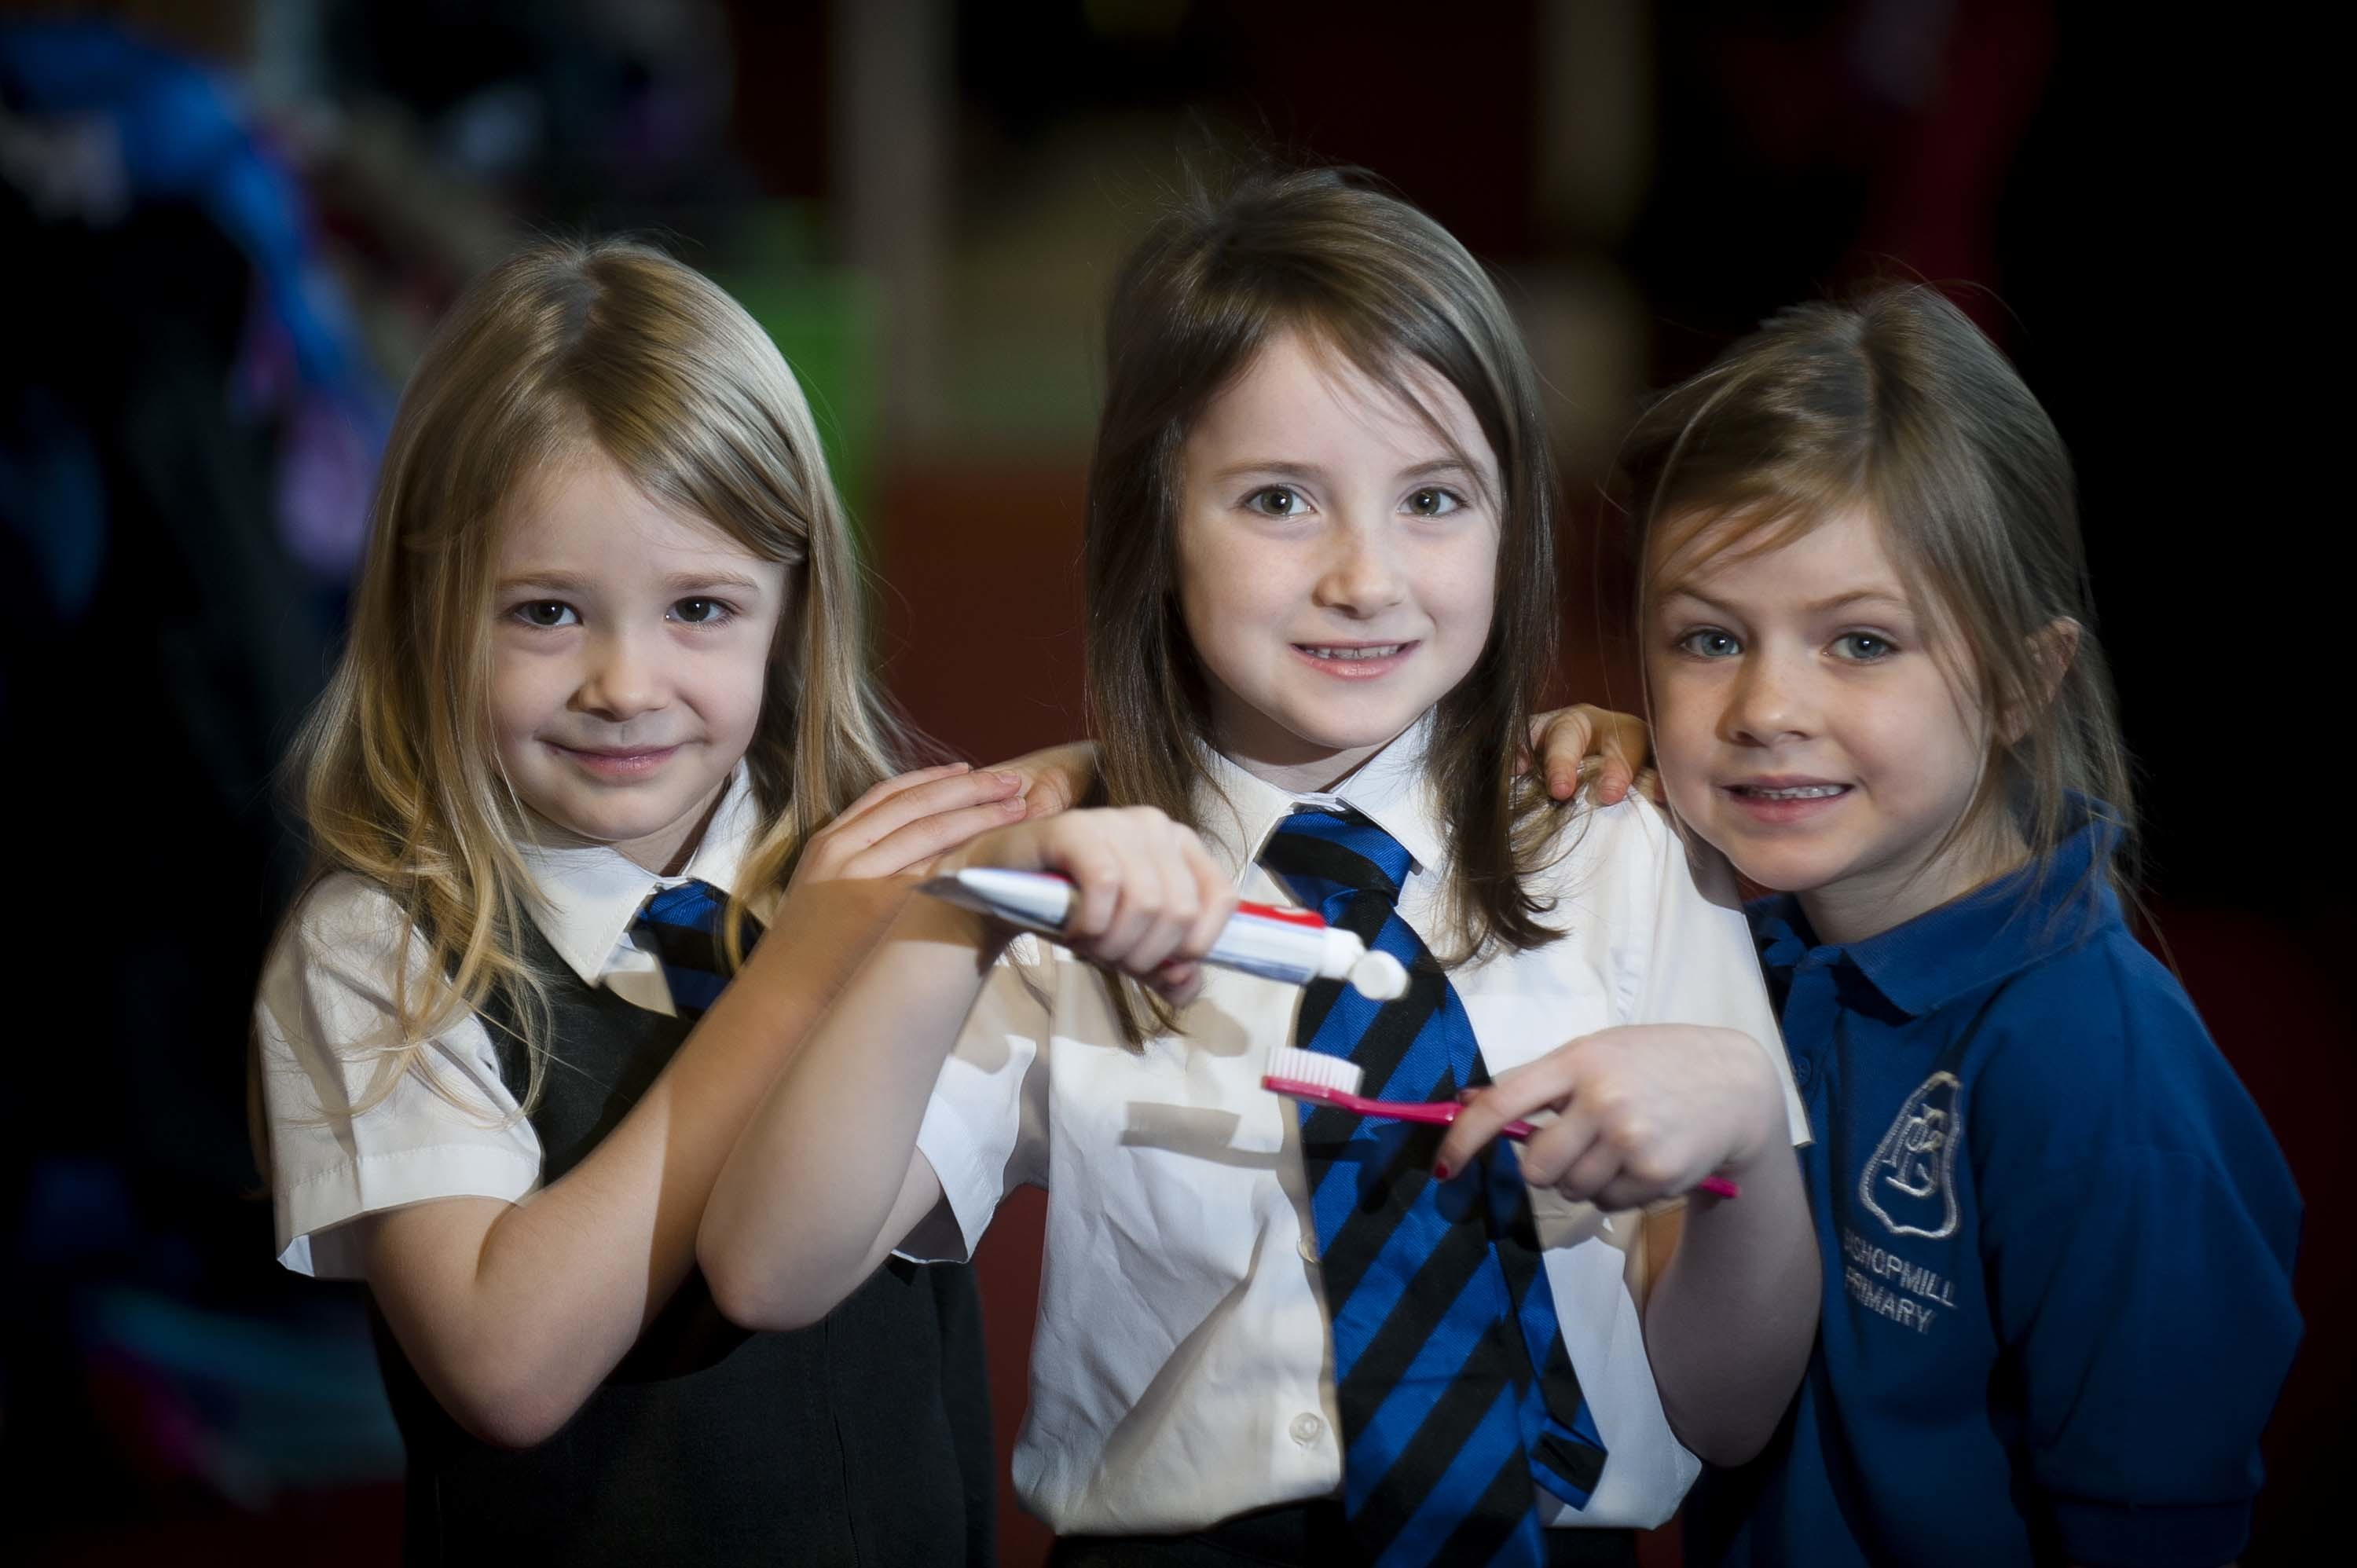 P2 kids at Bishopmill Primary School, Elgin.  In photo from the left Ella Morrison 6, Zara Whyte 6 and Mollie Watters 6.